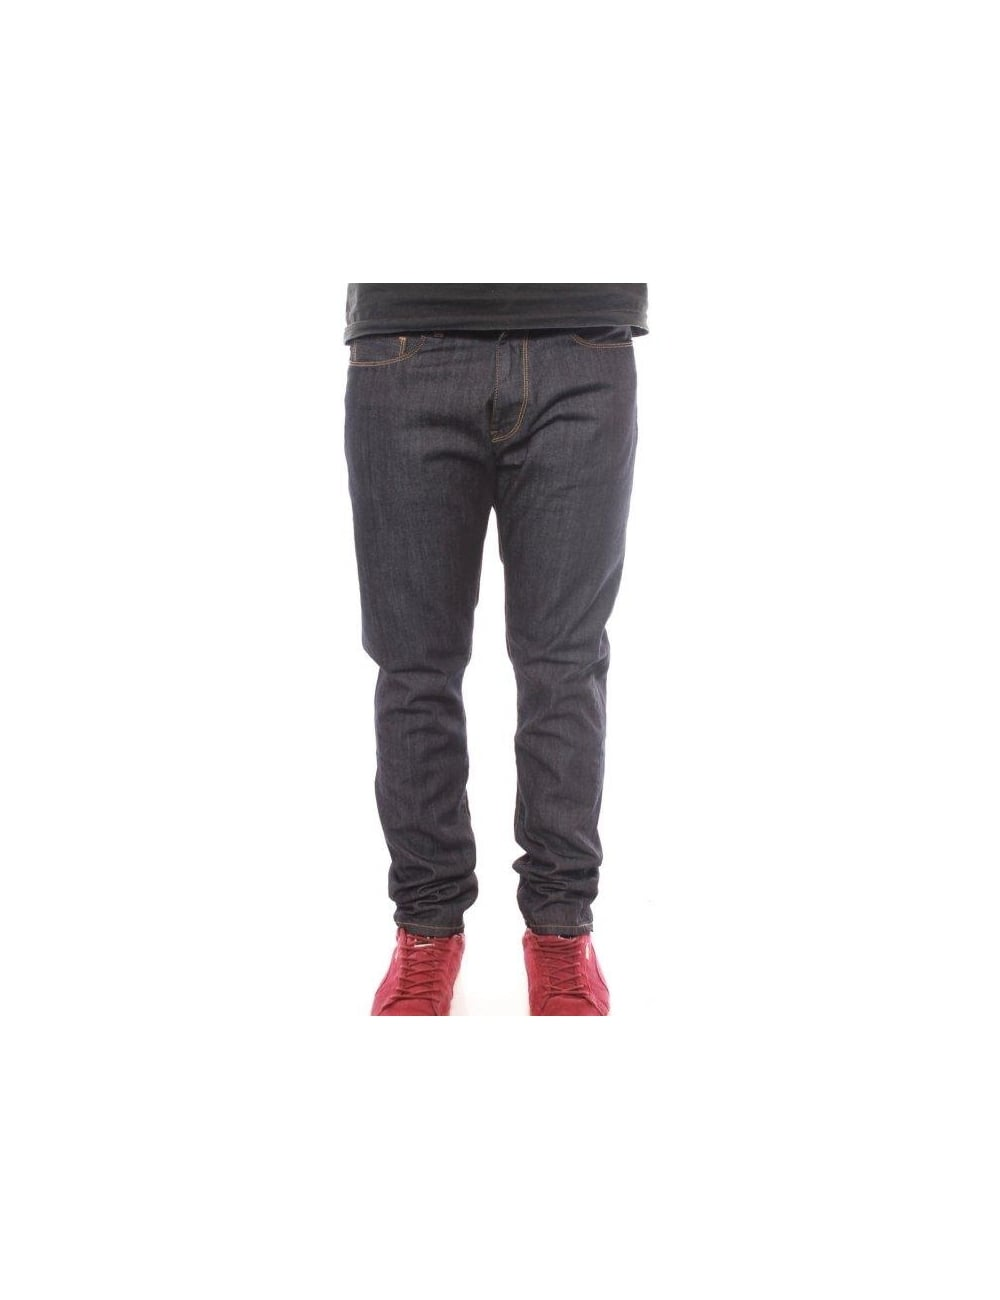 1d37884e Carhartt WIP Vicious Pant - Blue Rinsed (Santa Monica) - Clothing ...